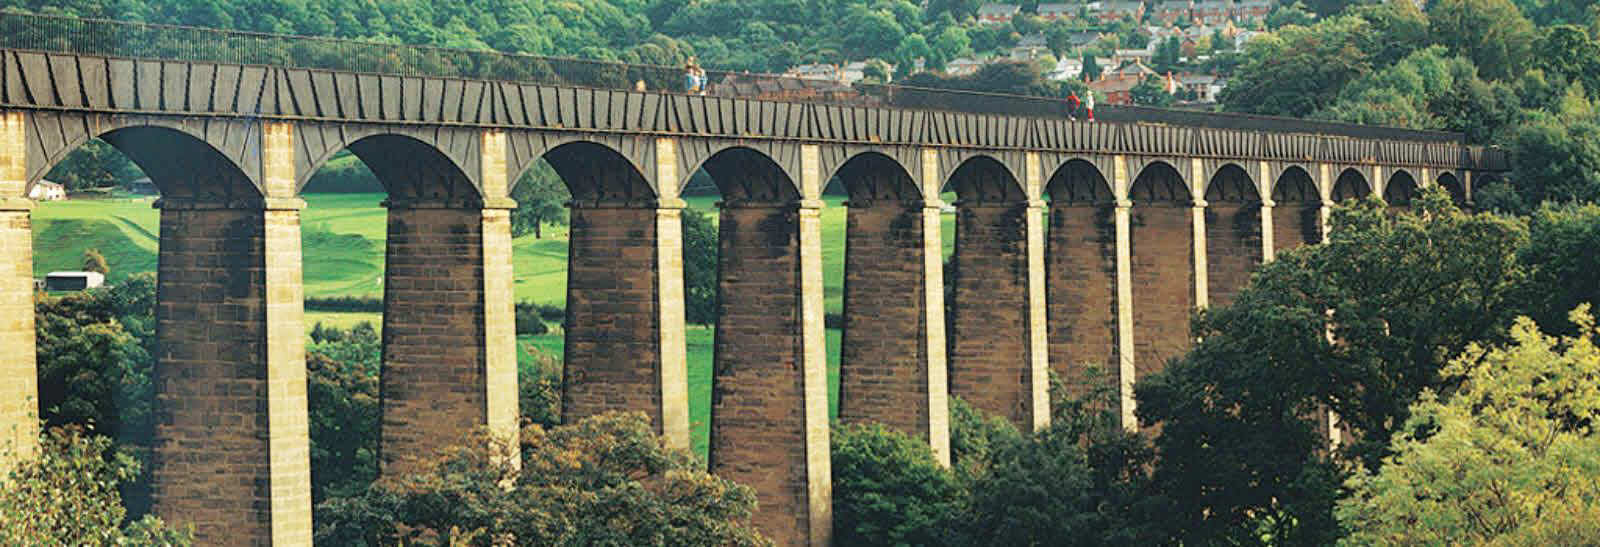 Canals And Steam Trains Holidays In Shropshire And Wales